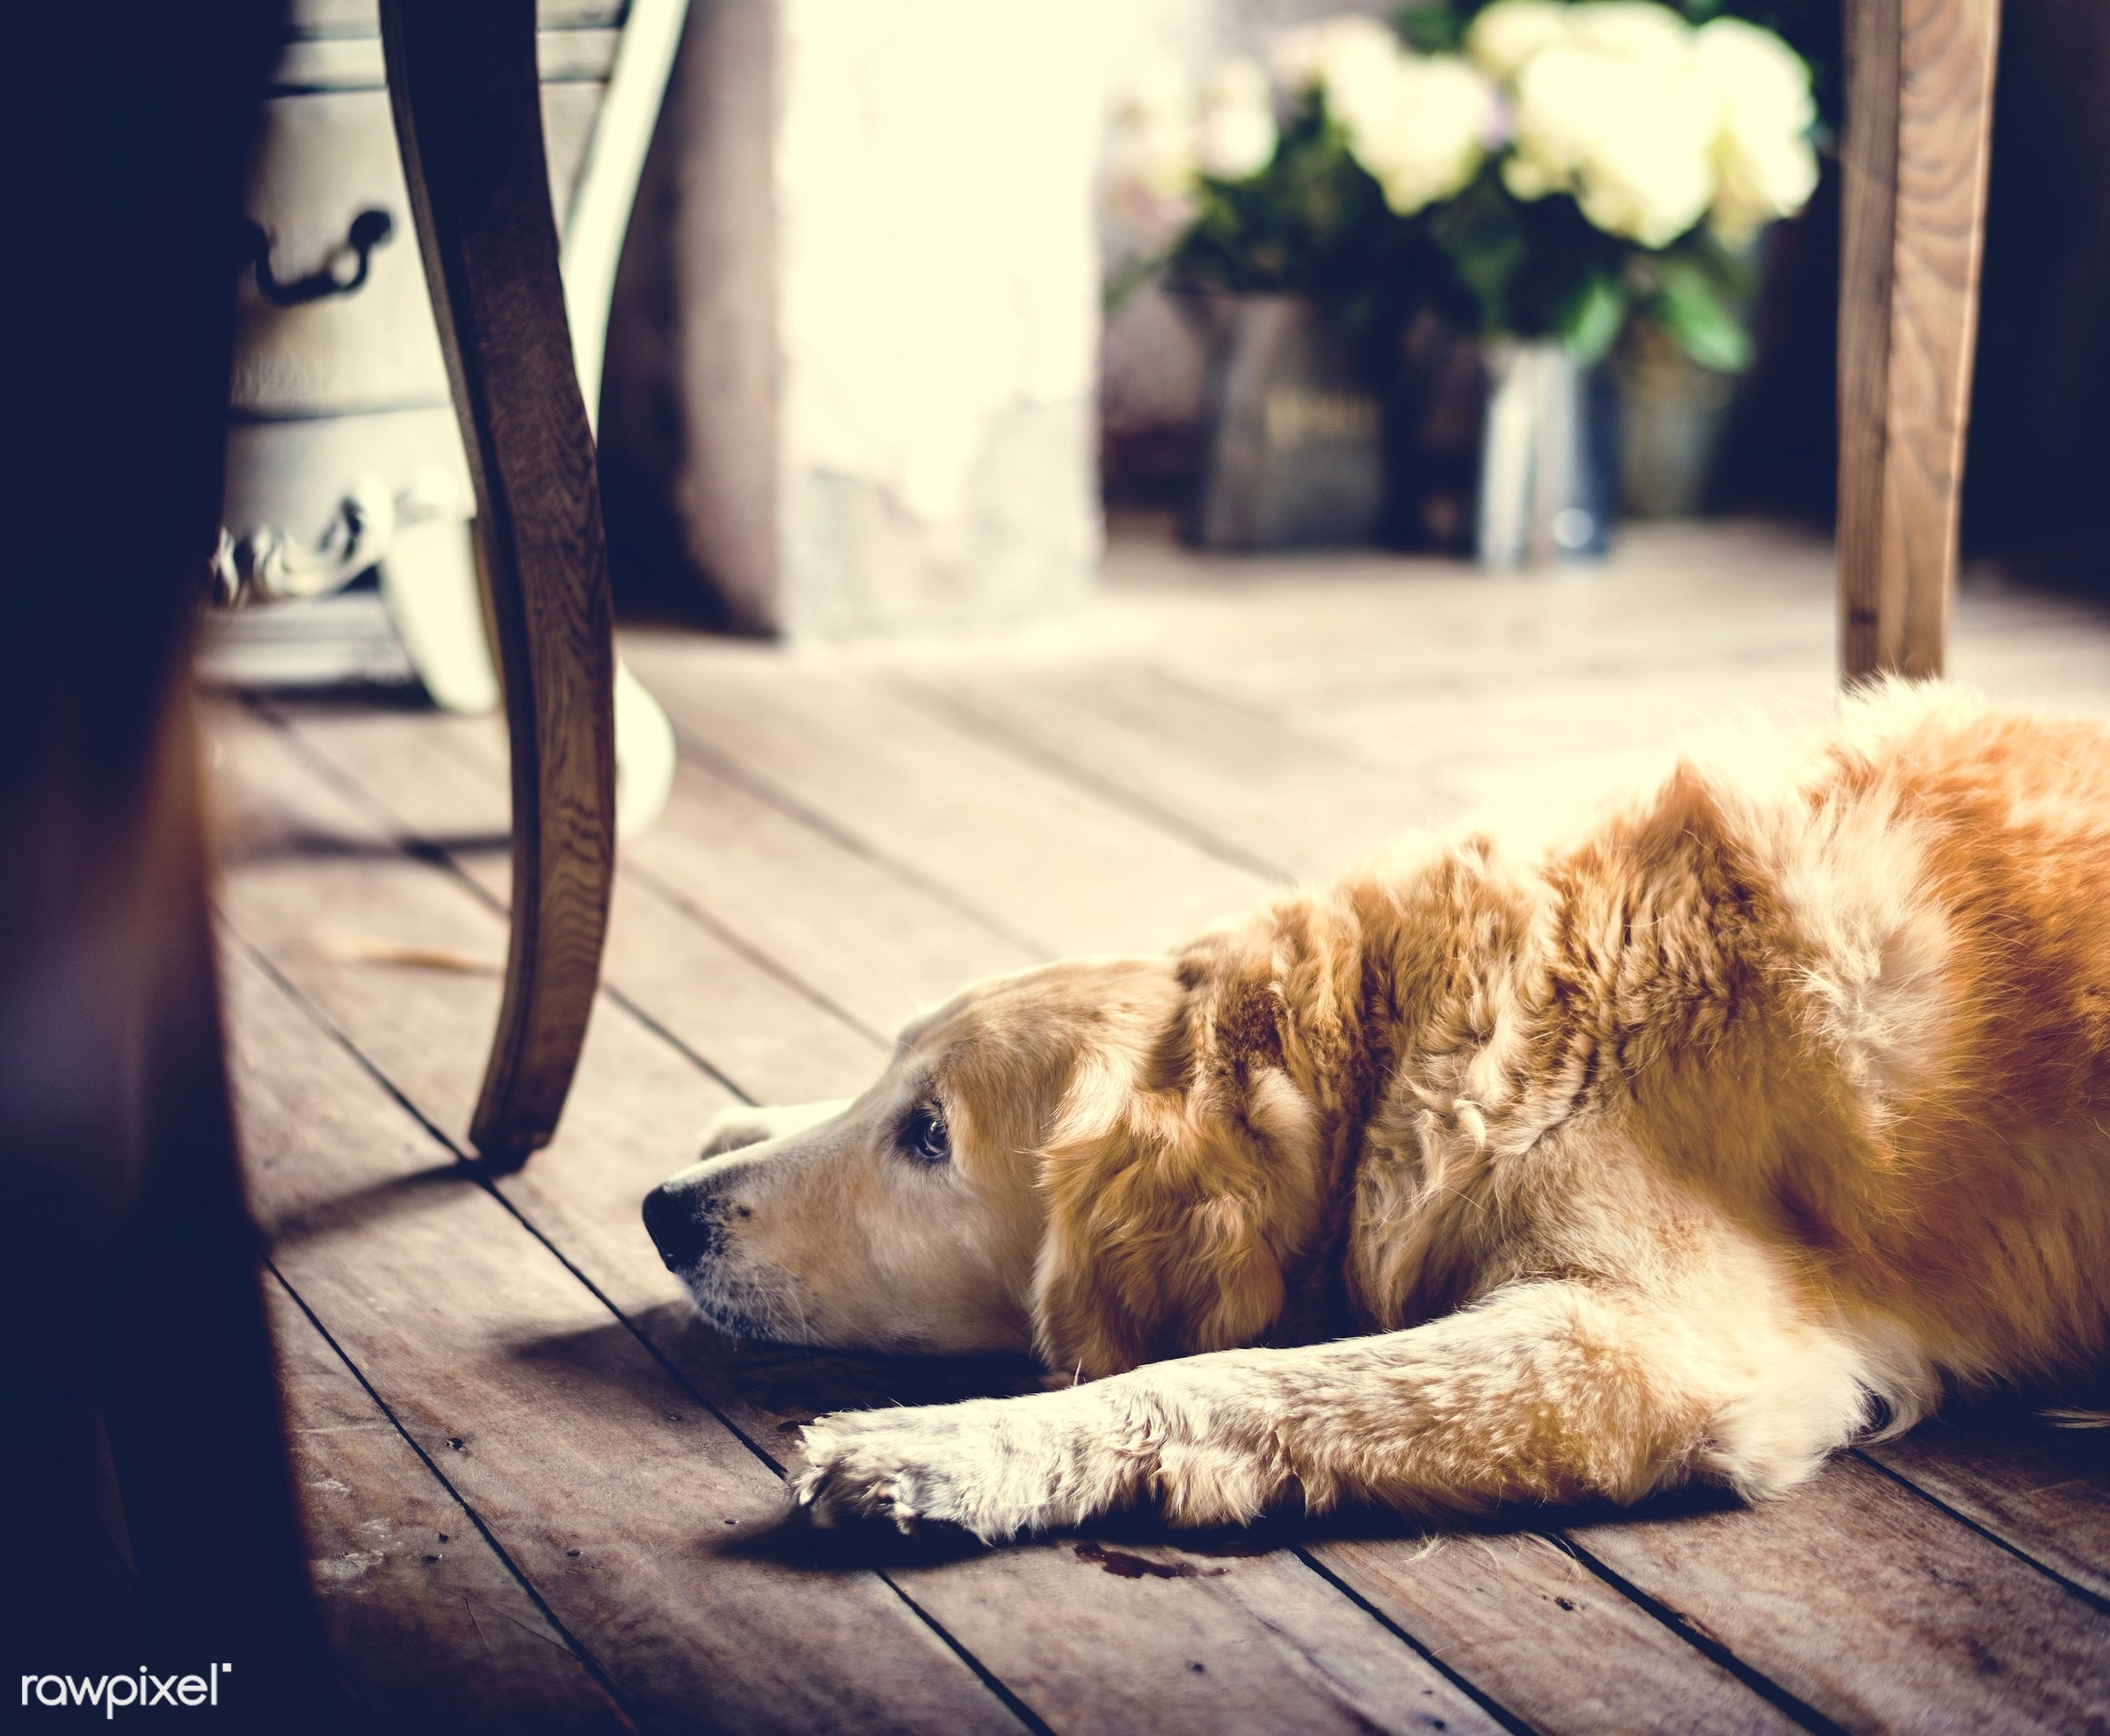 retriever, breed, old, relax, for, wait, house, cute, rustic, alone, cheerful, animal, mammals, waiting, lay, beautiful,...